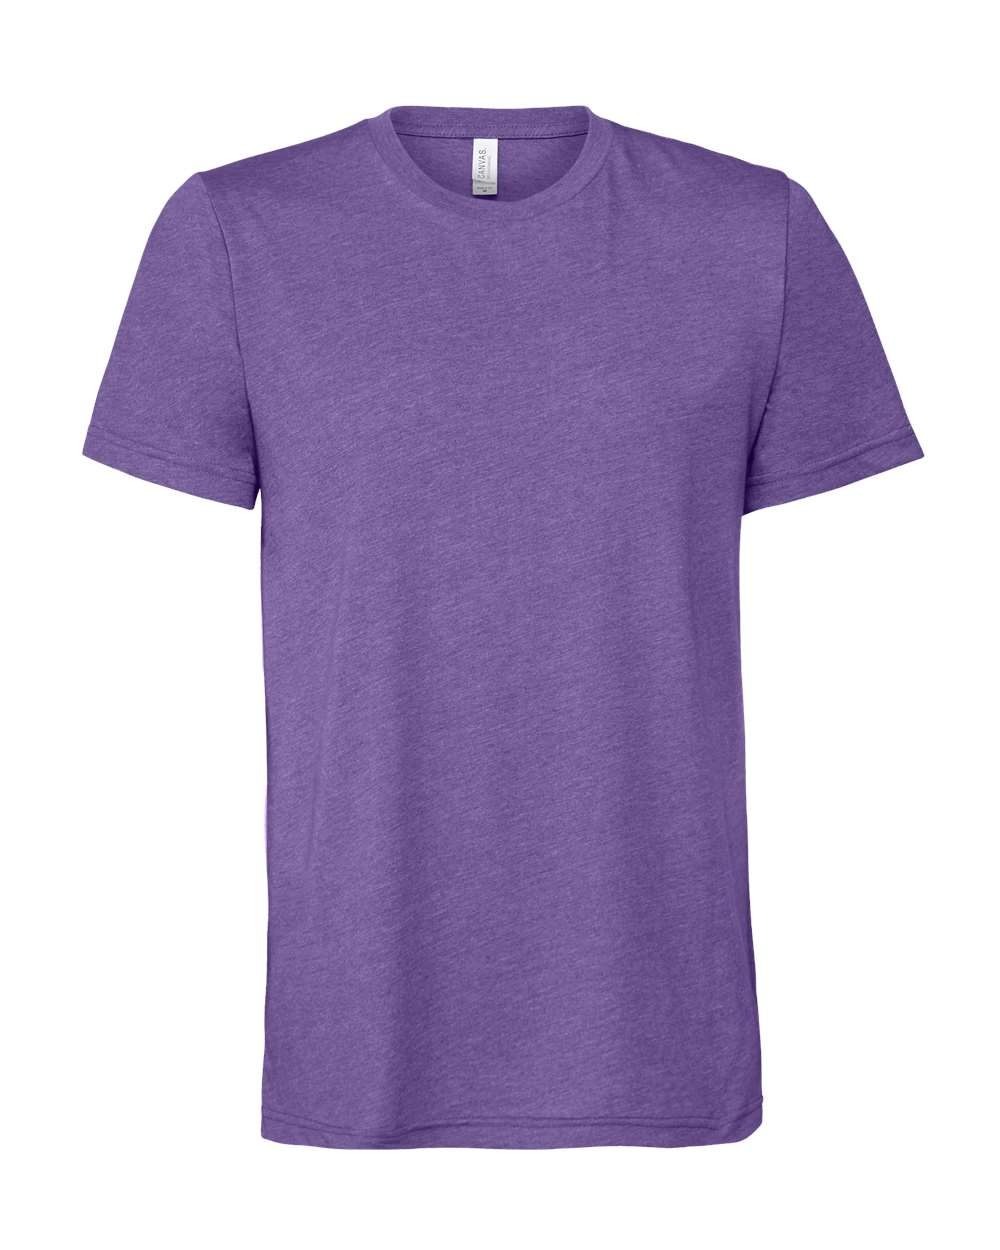 Bella-Canvas-Unisex-Short-Sleeve-Heather-Jersey-T-Shirt-3001c2-up-to-5XL thumbnail 69